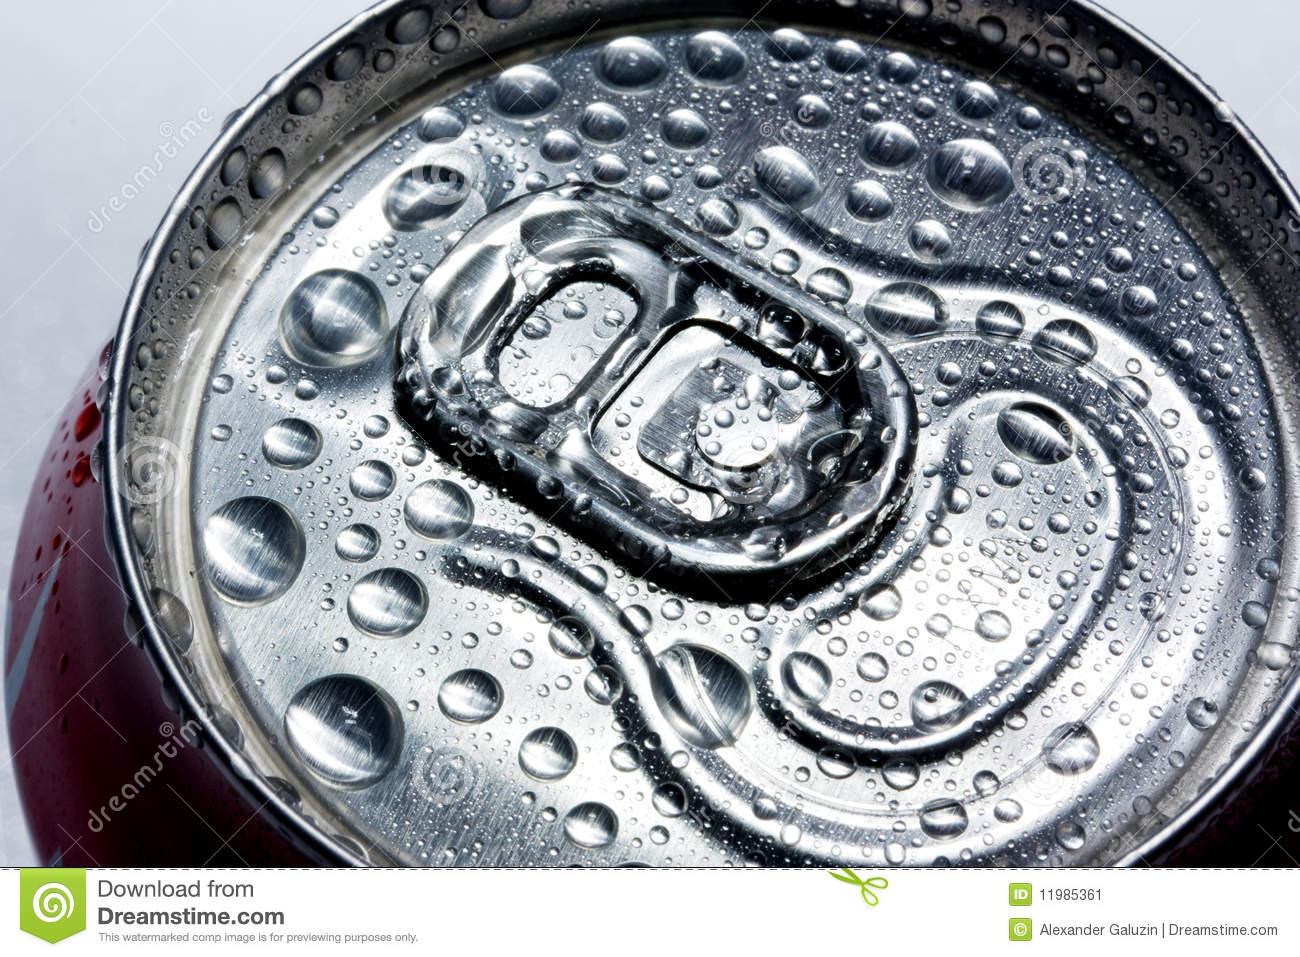 Condensation On Drinks Can Stock Image - Image: 11985361